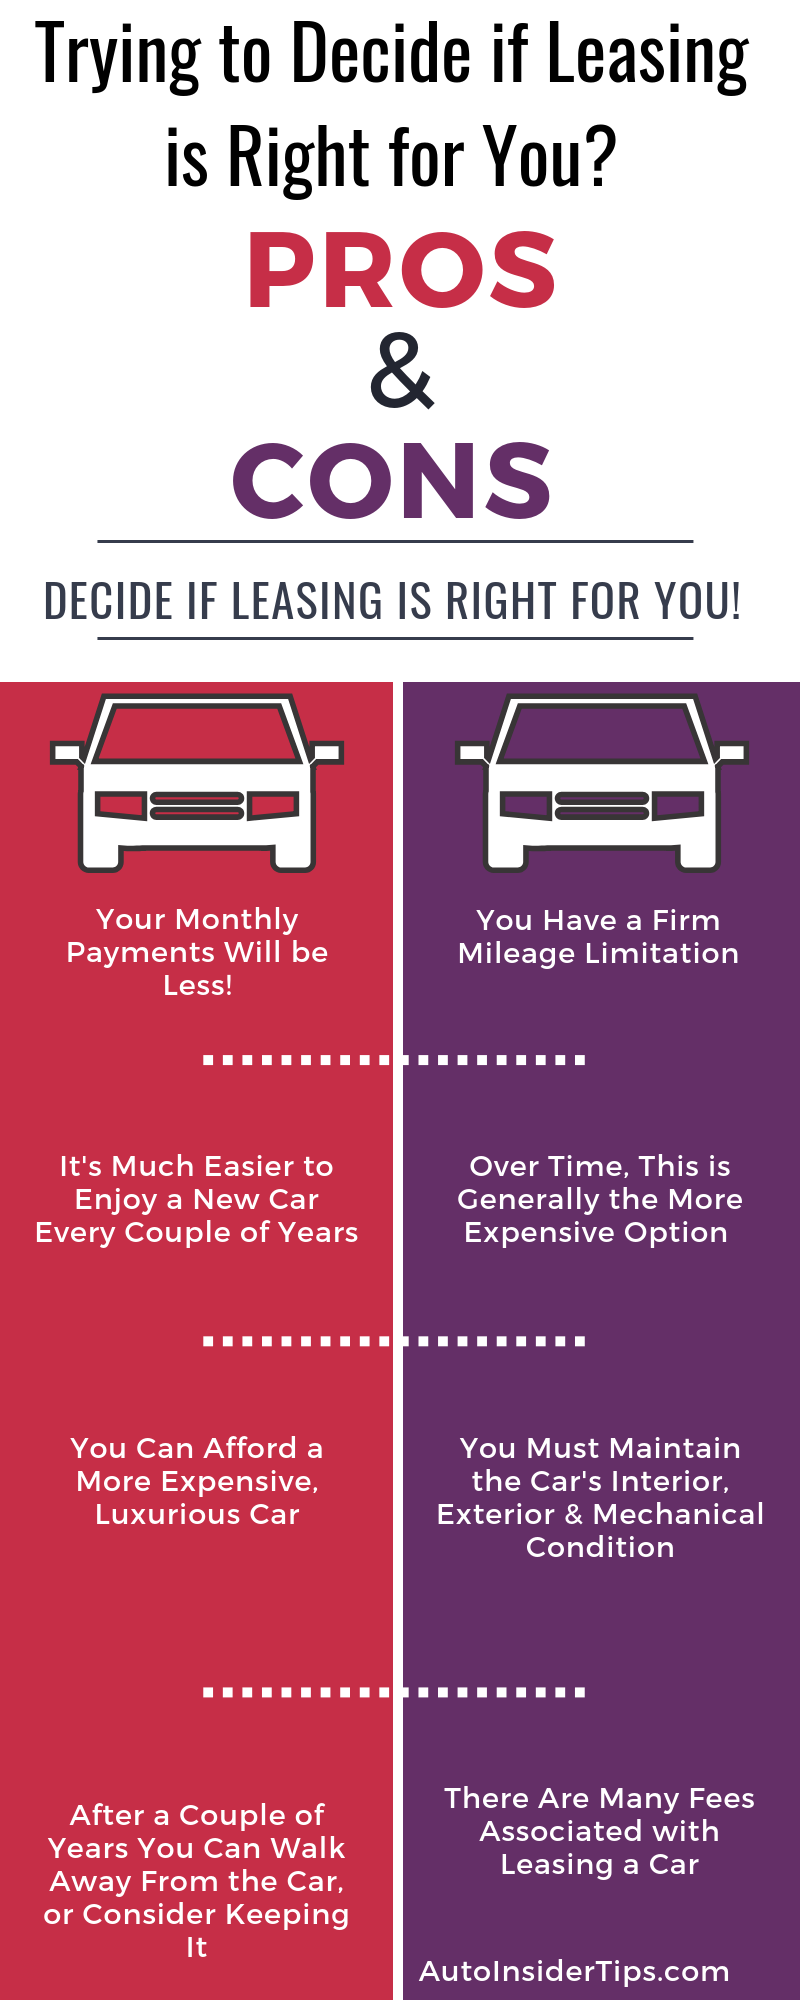 pros and cons to leasing a car